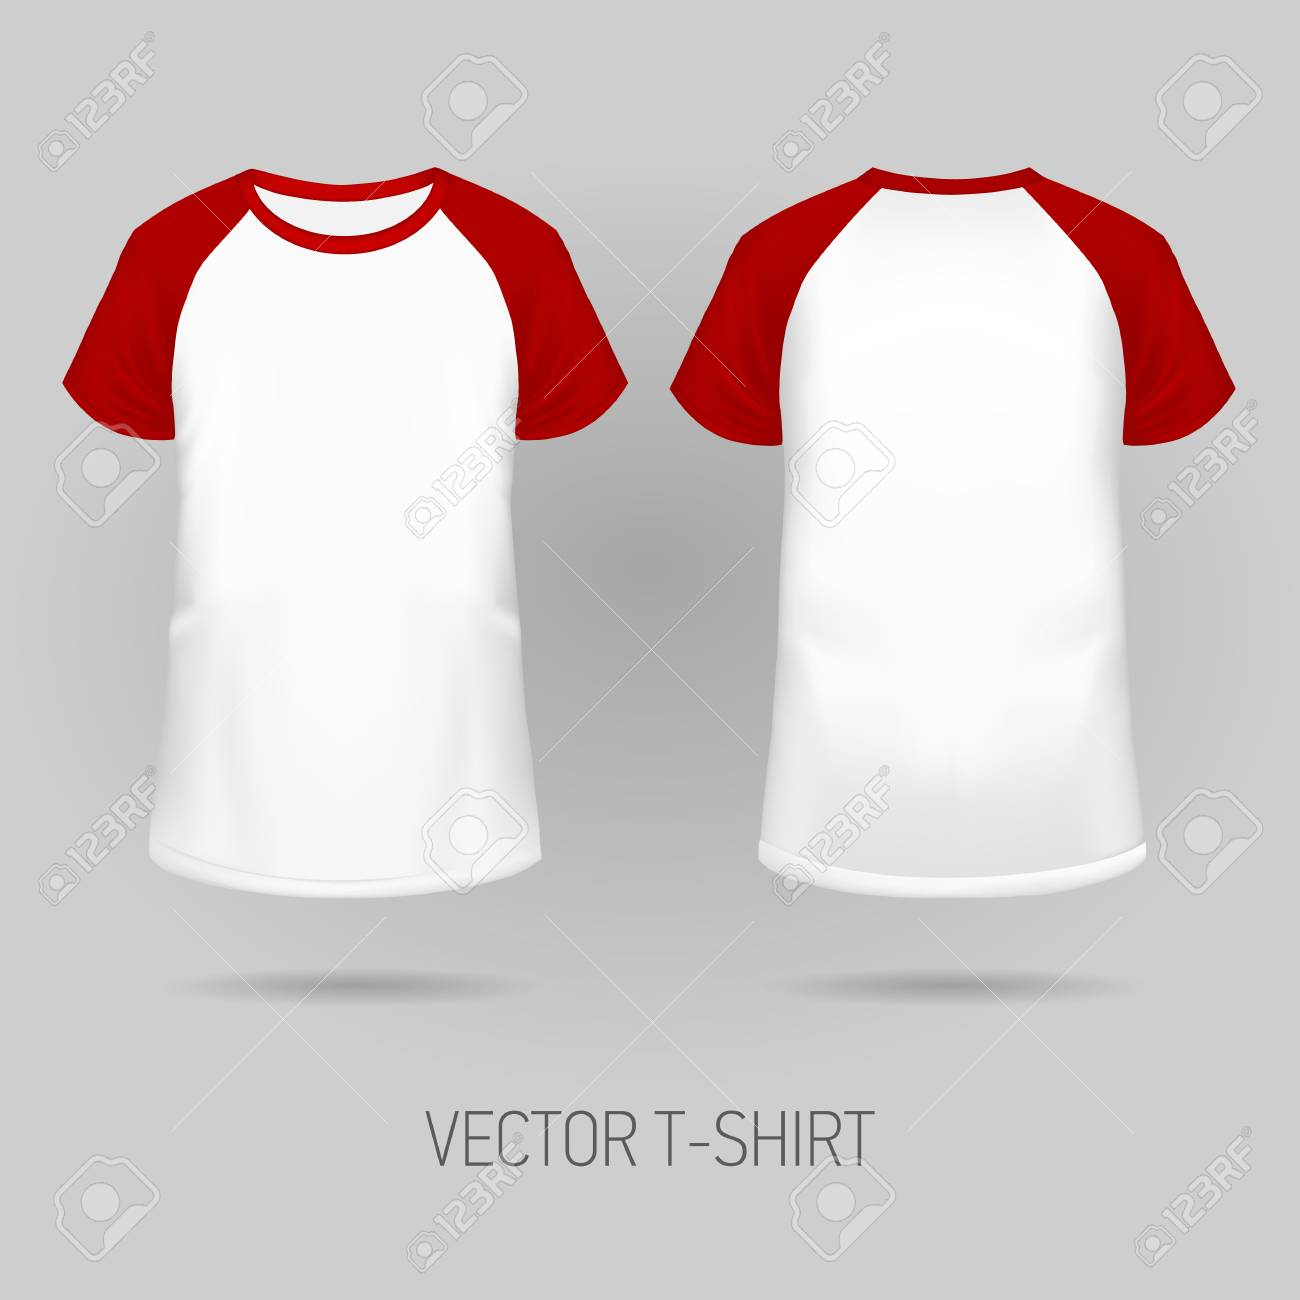 8b3d25e57f Raglan t-shirt with red short sleeve in front and back views, realistic  gradient